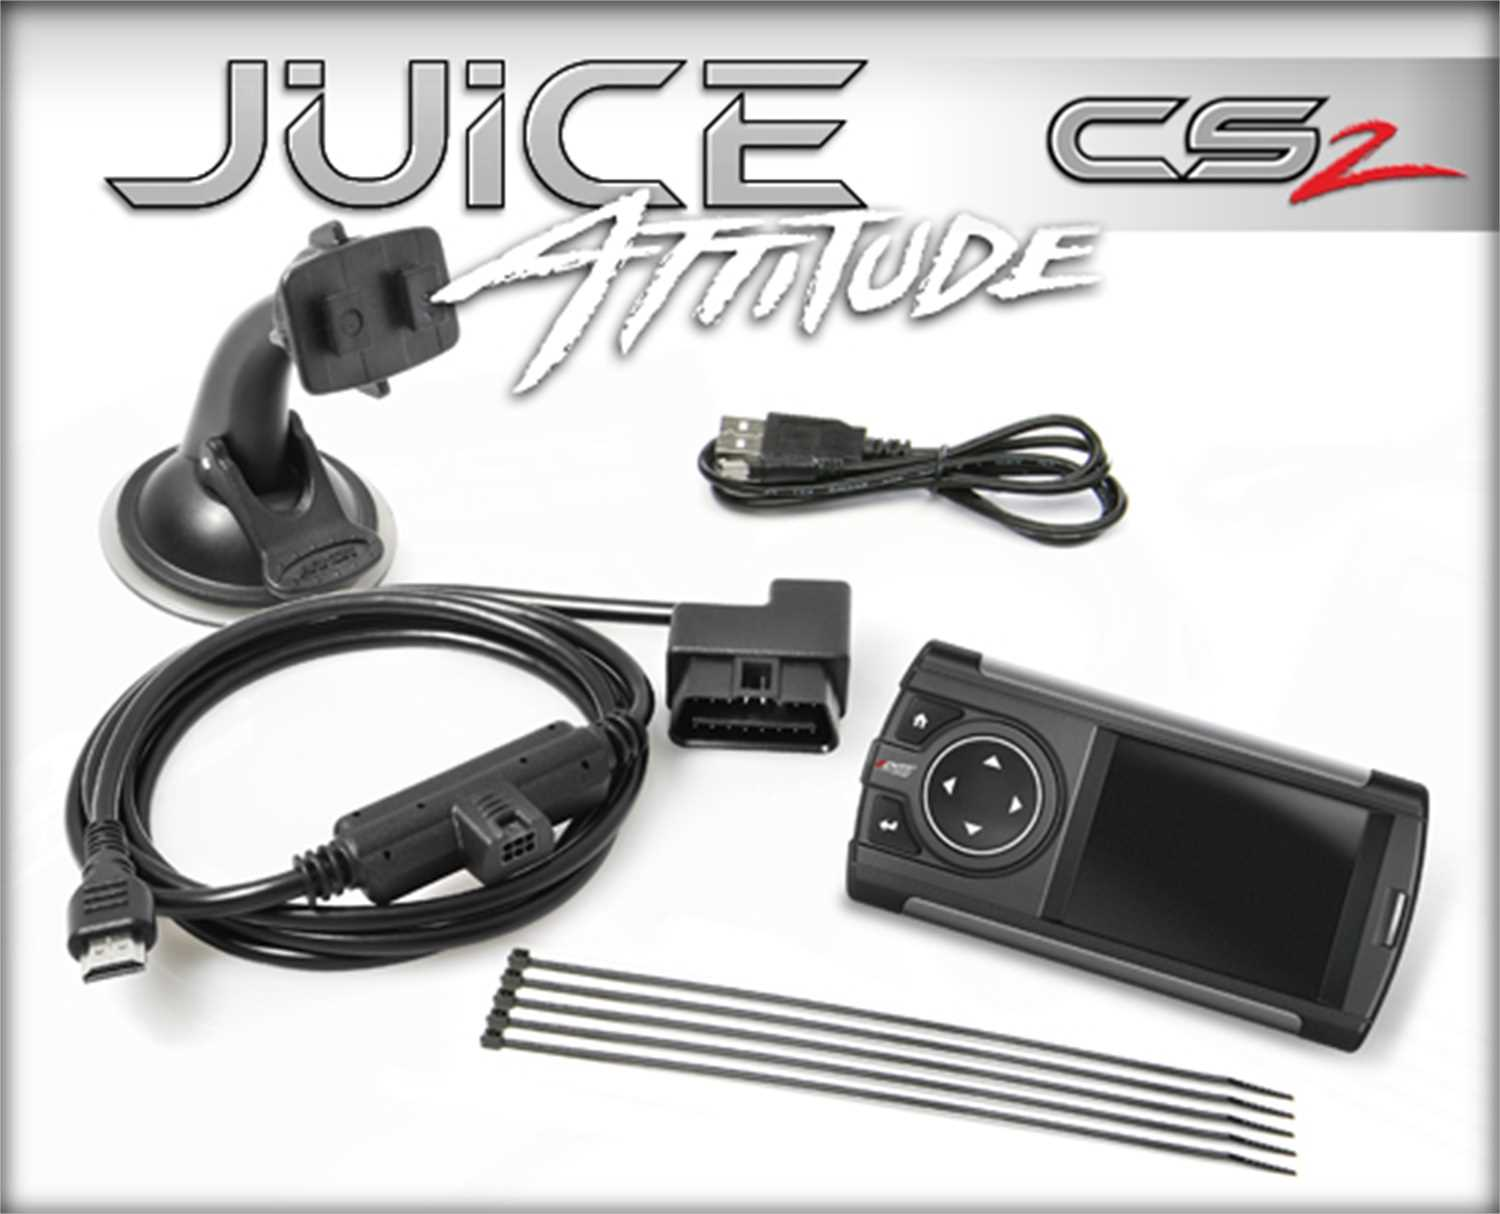 11401 Edge Products Juice w/Attitude CS2 Programmer